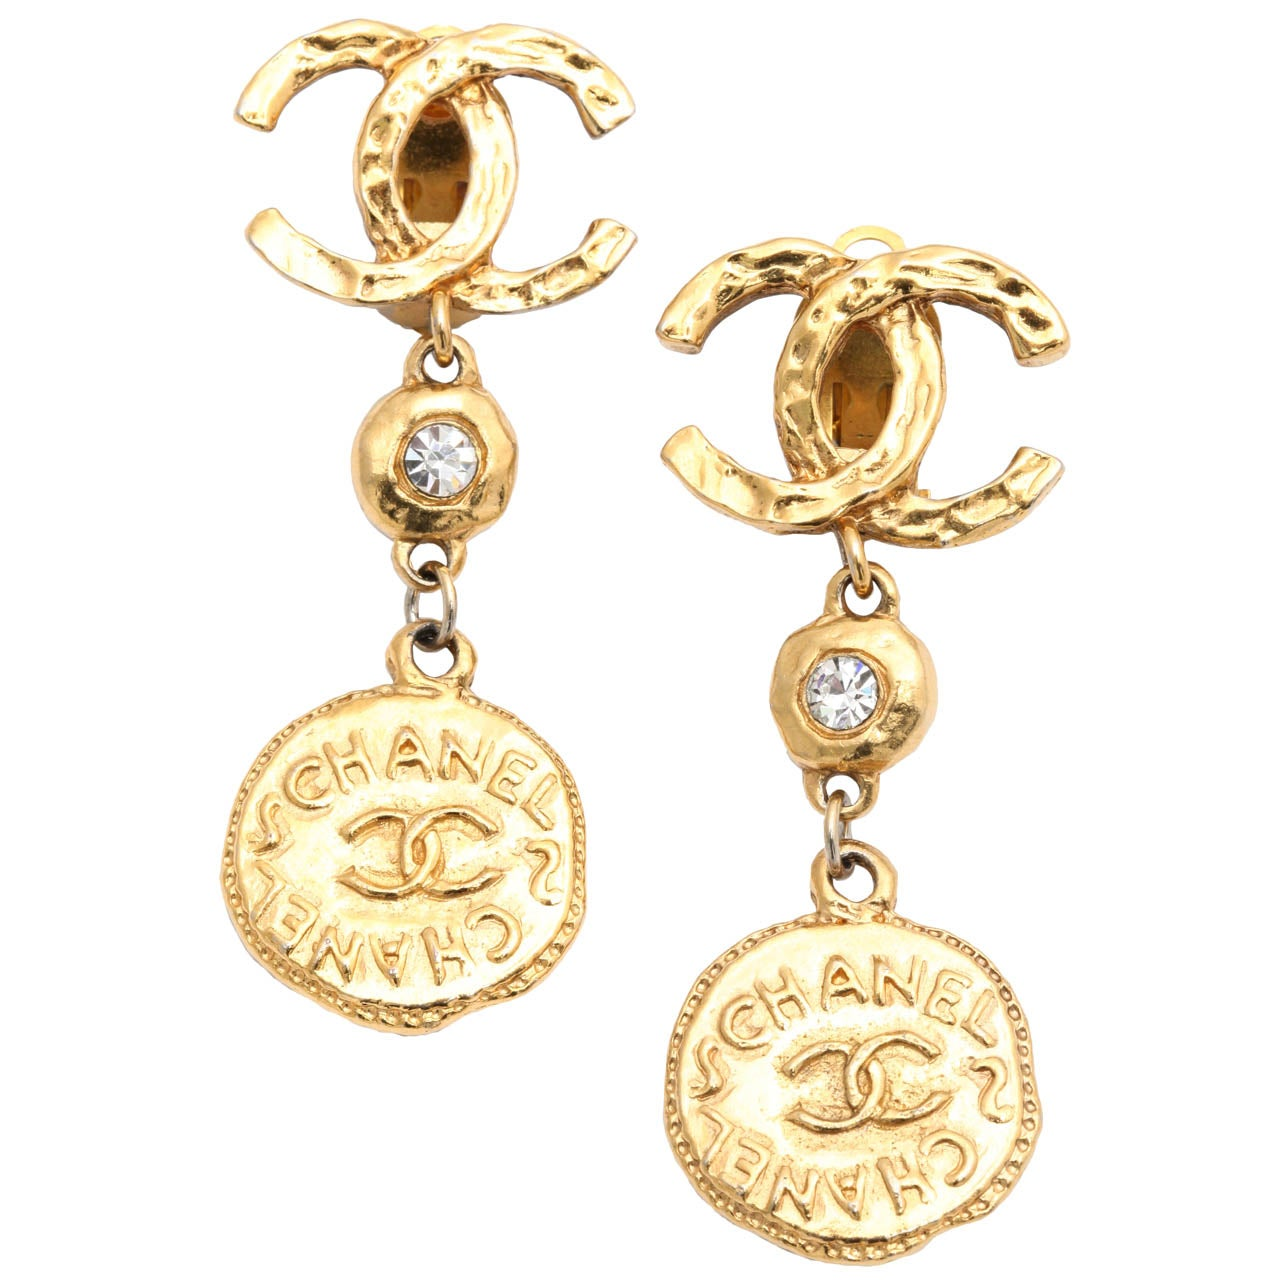 Chanel Long Coin Dangling Earrings With Cc 1